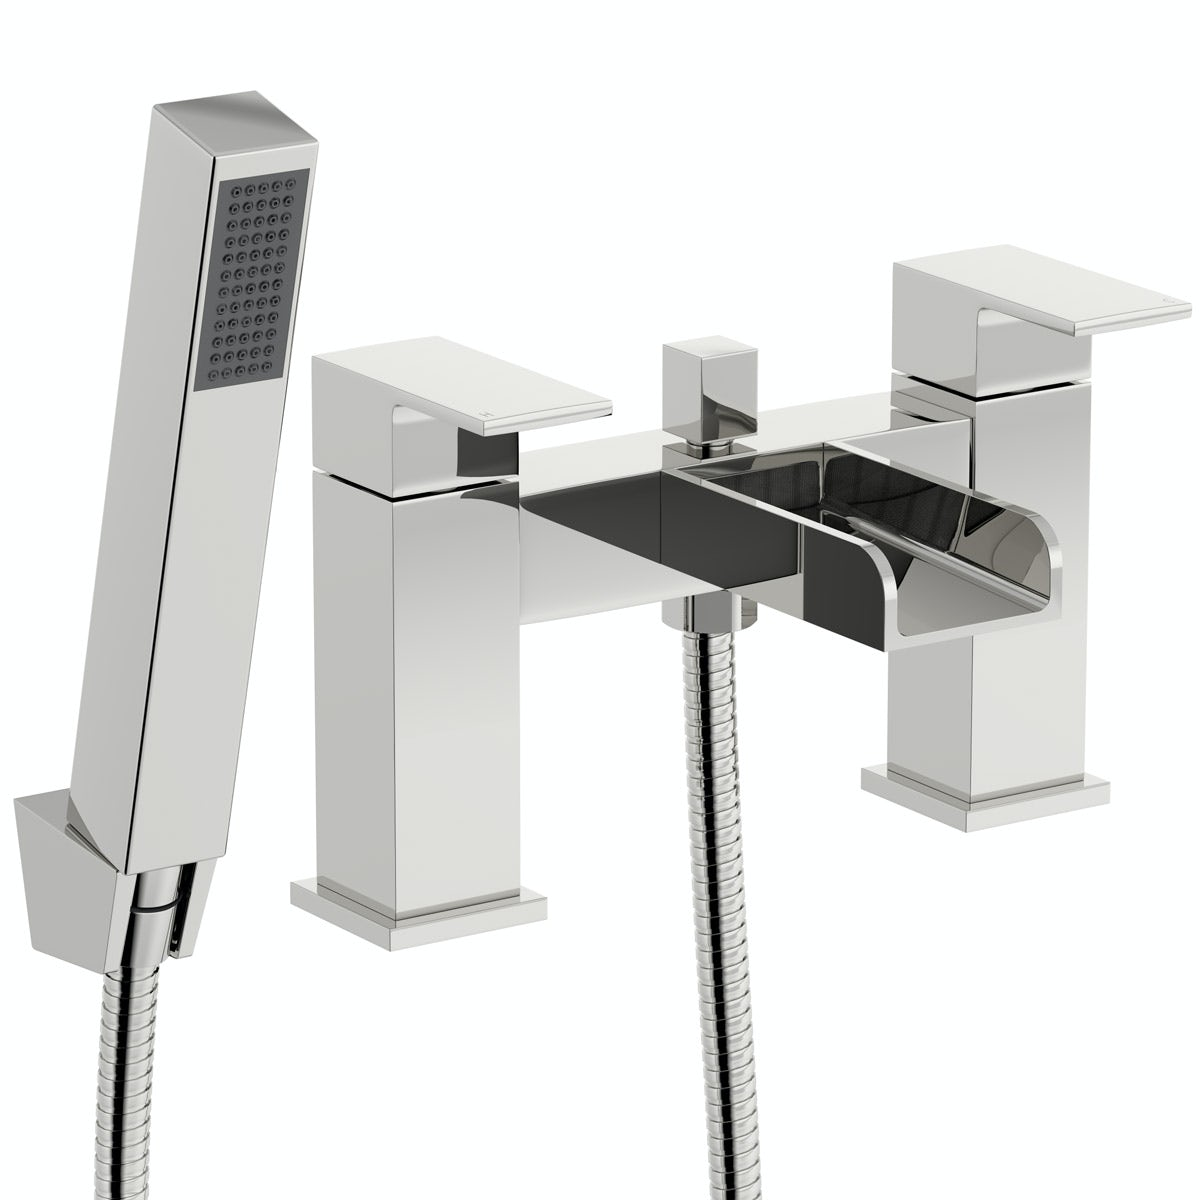 Mode Carter waterfall bath shower mixer tap